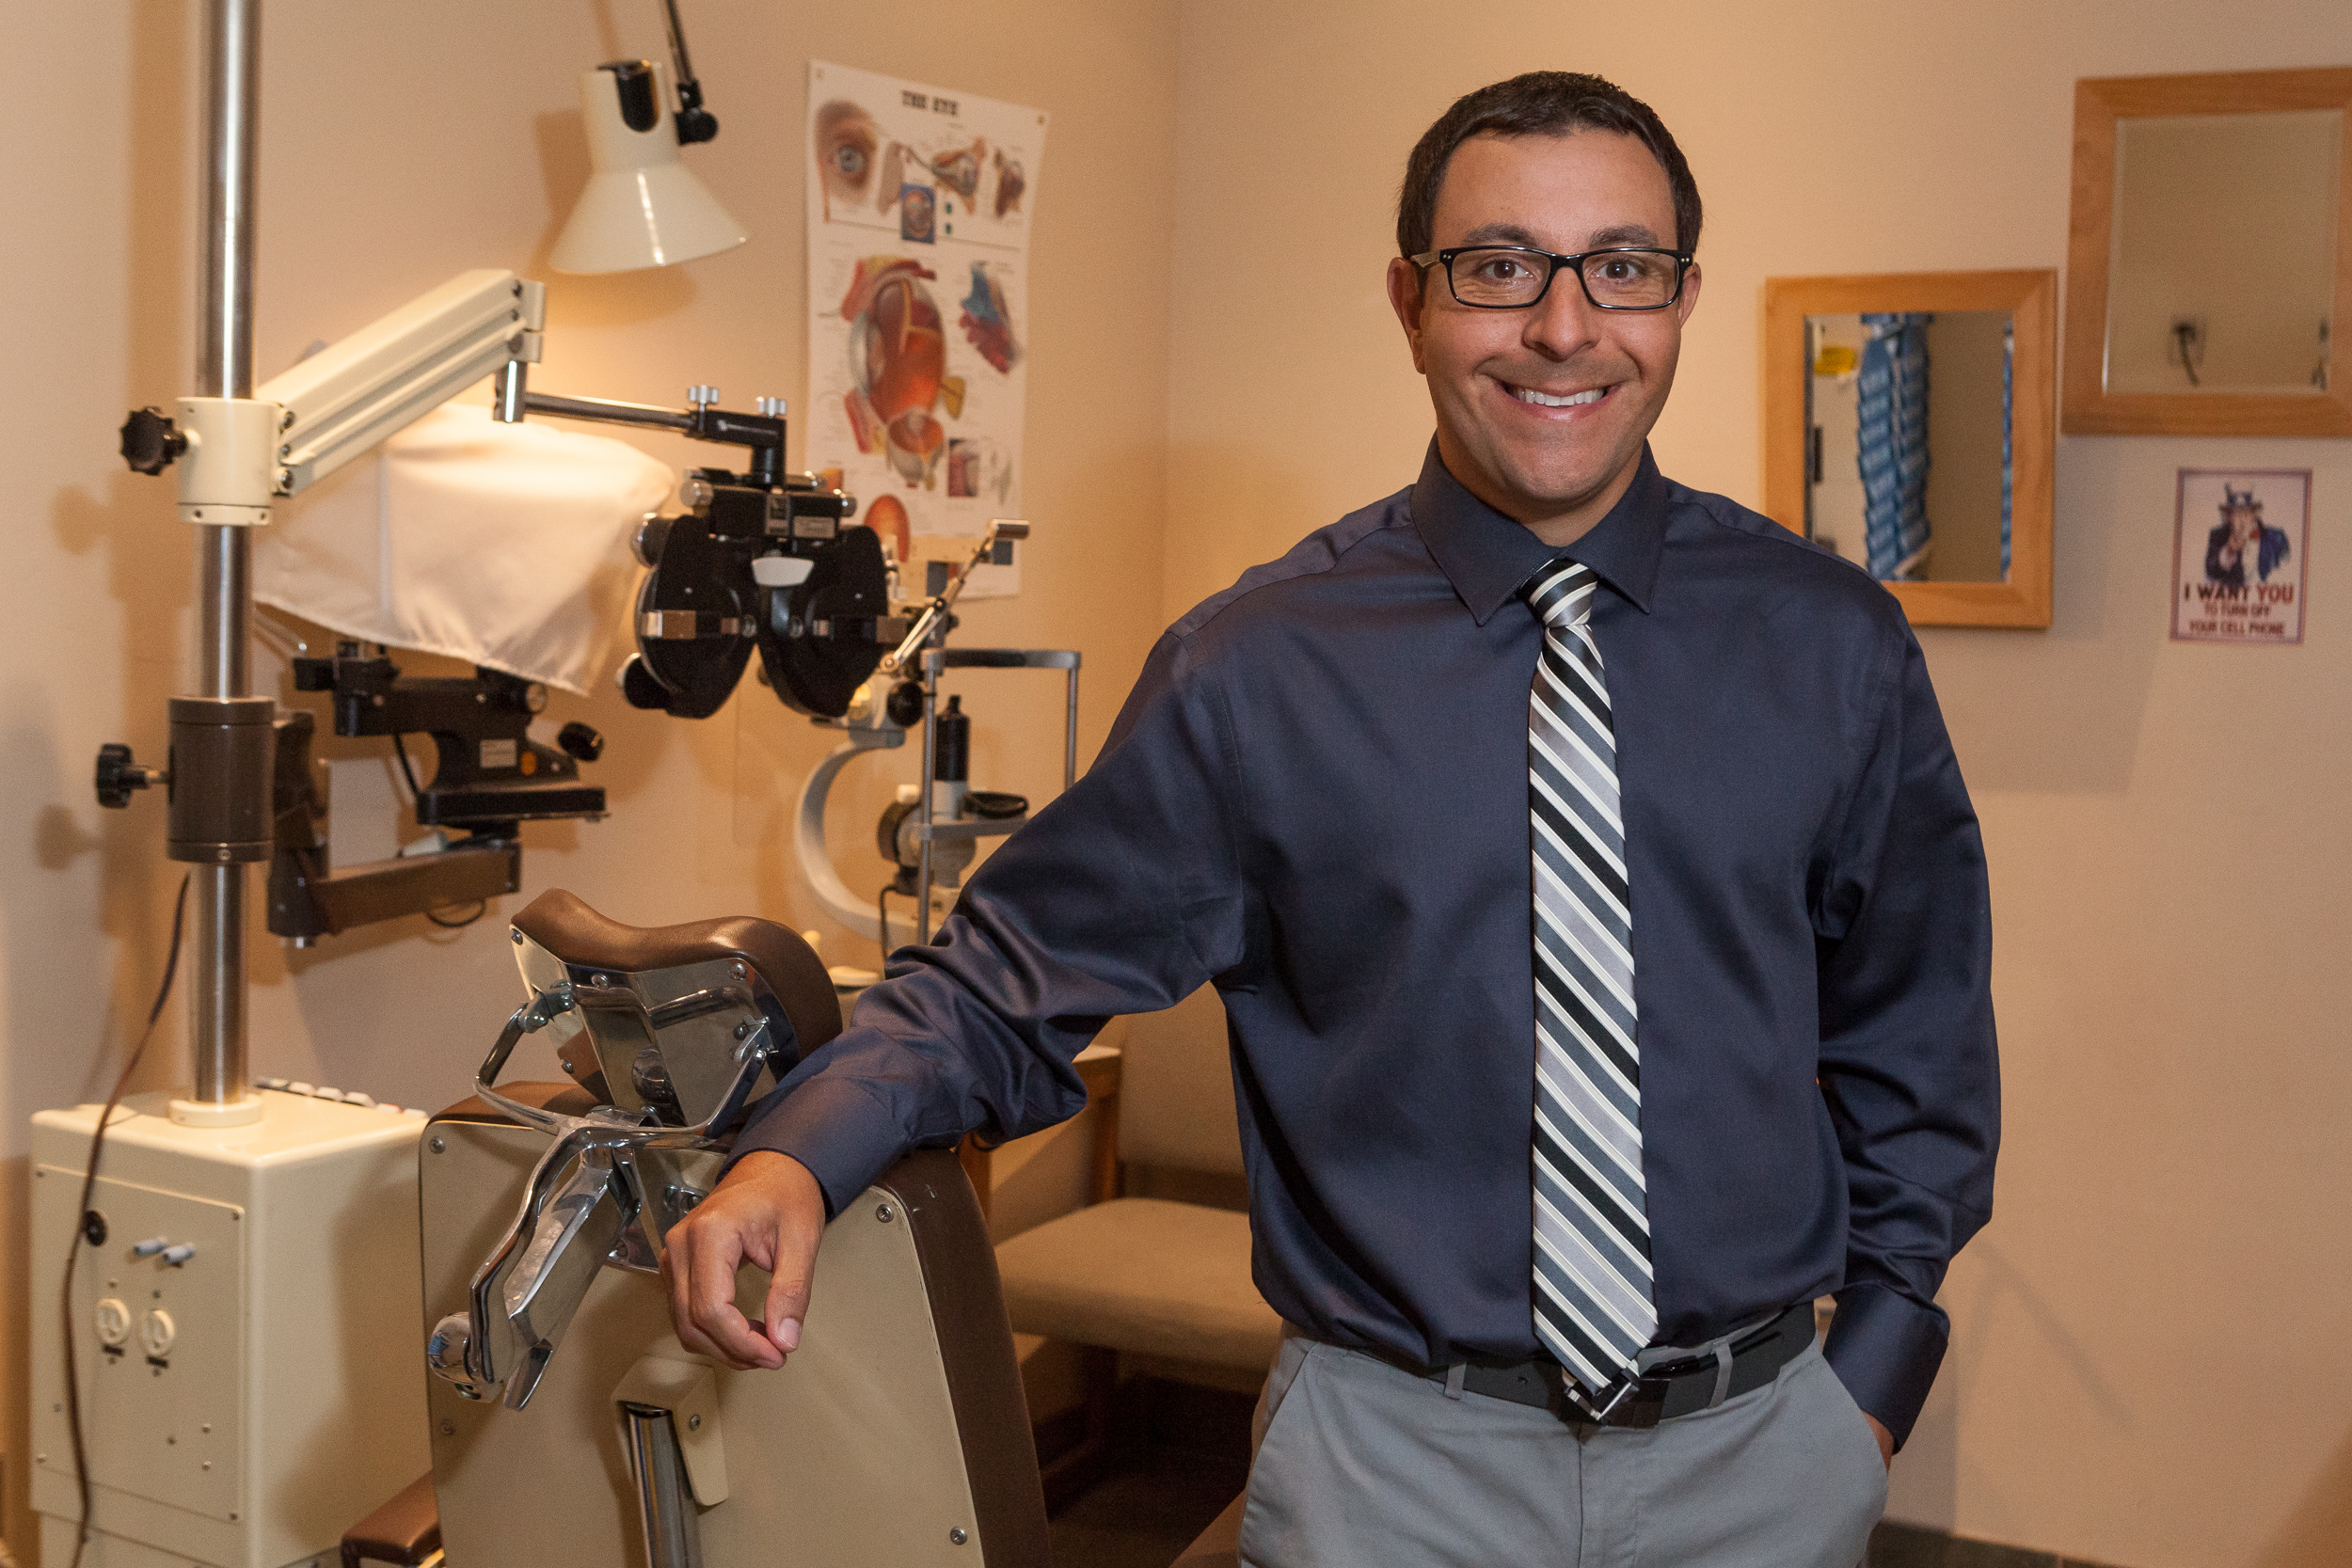 Dr. Joseph Toth is a leading optometrist in the Greater San Diego area, providing patients with personalized care and treatment for a wide array of vision issues and eye diseases at his practice, San